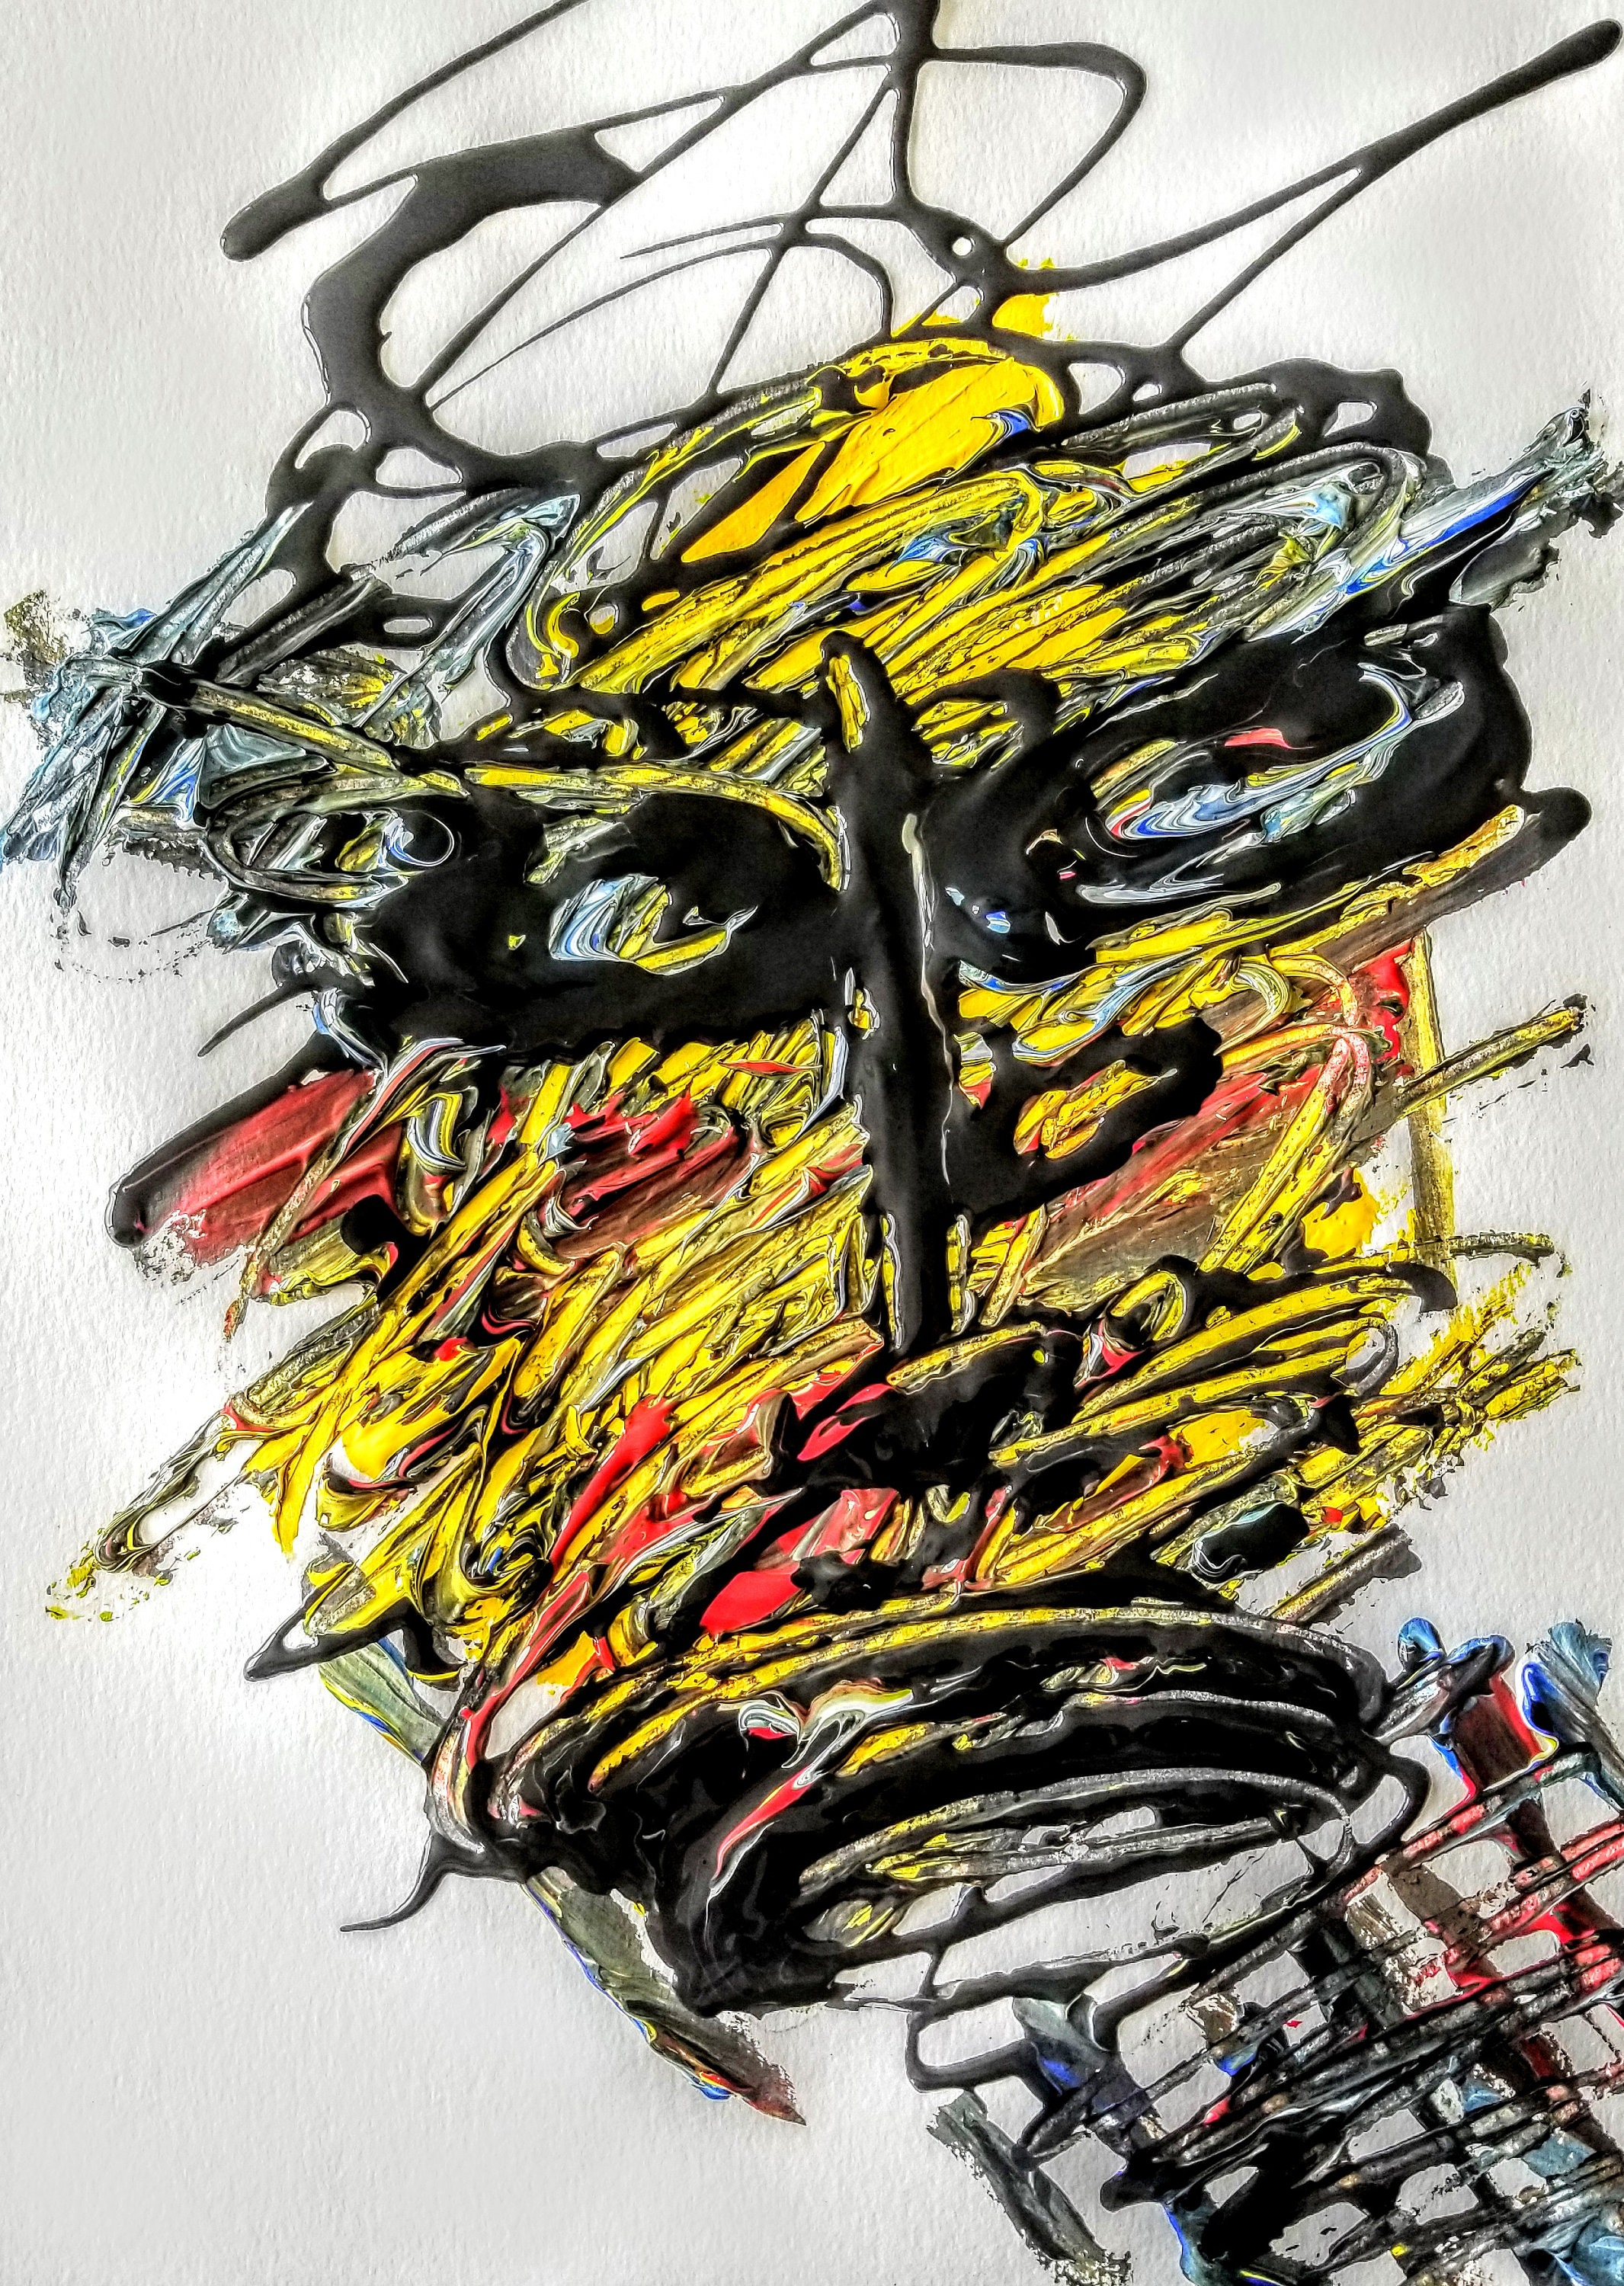 The Mask - Art, Paintings, Abstract, Faces, Trey Coppland Designs ...